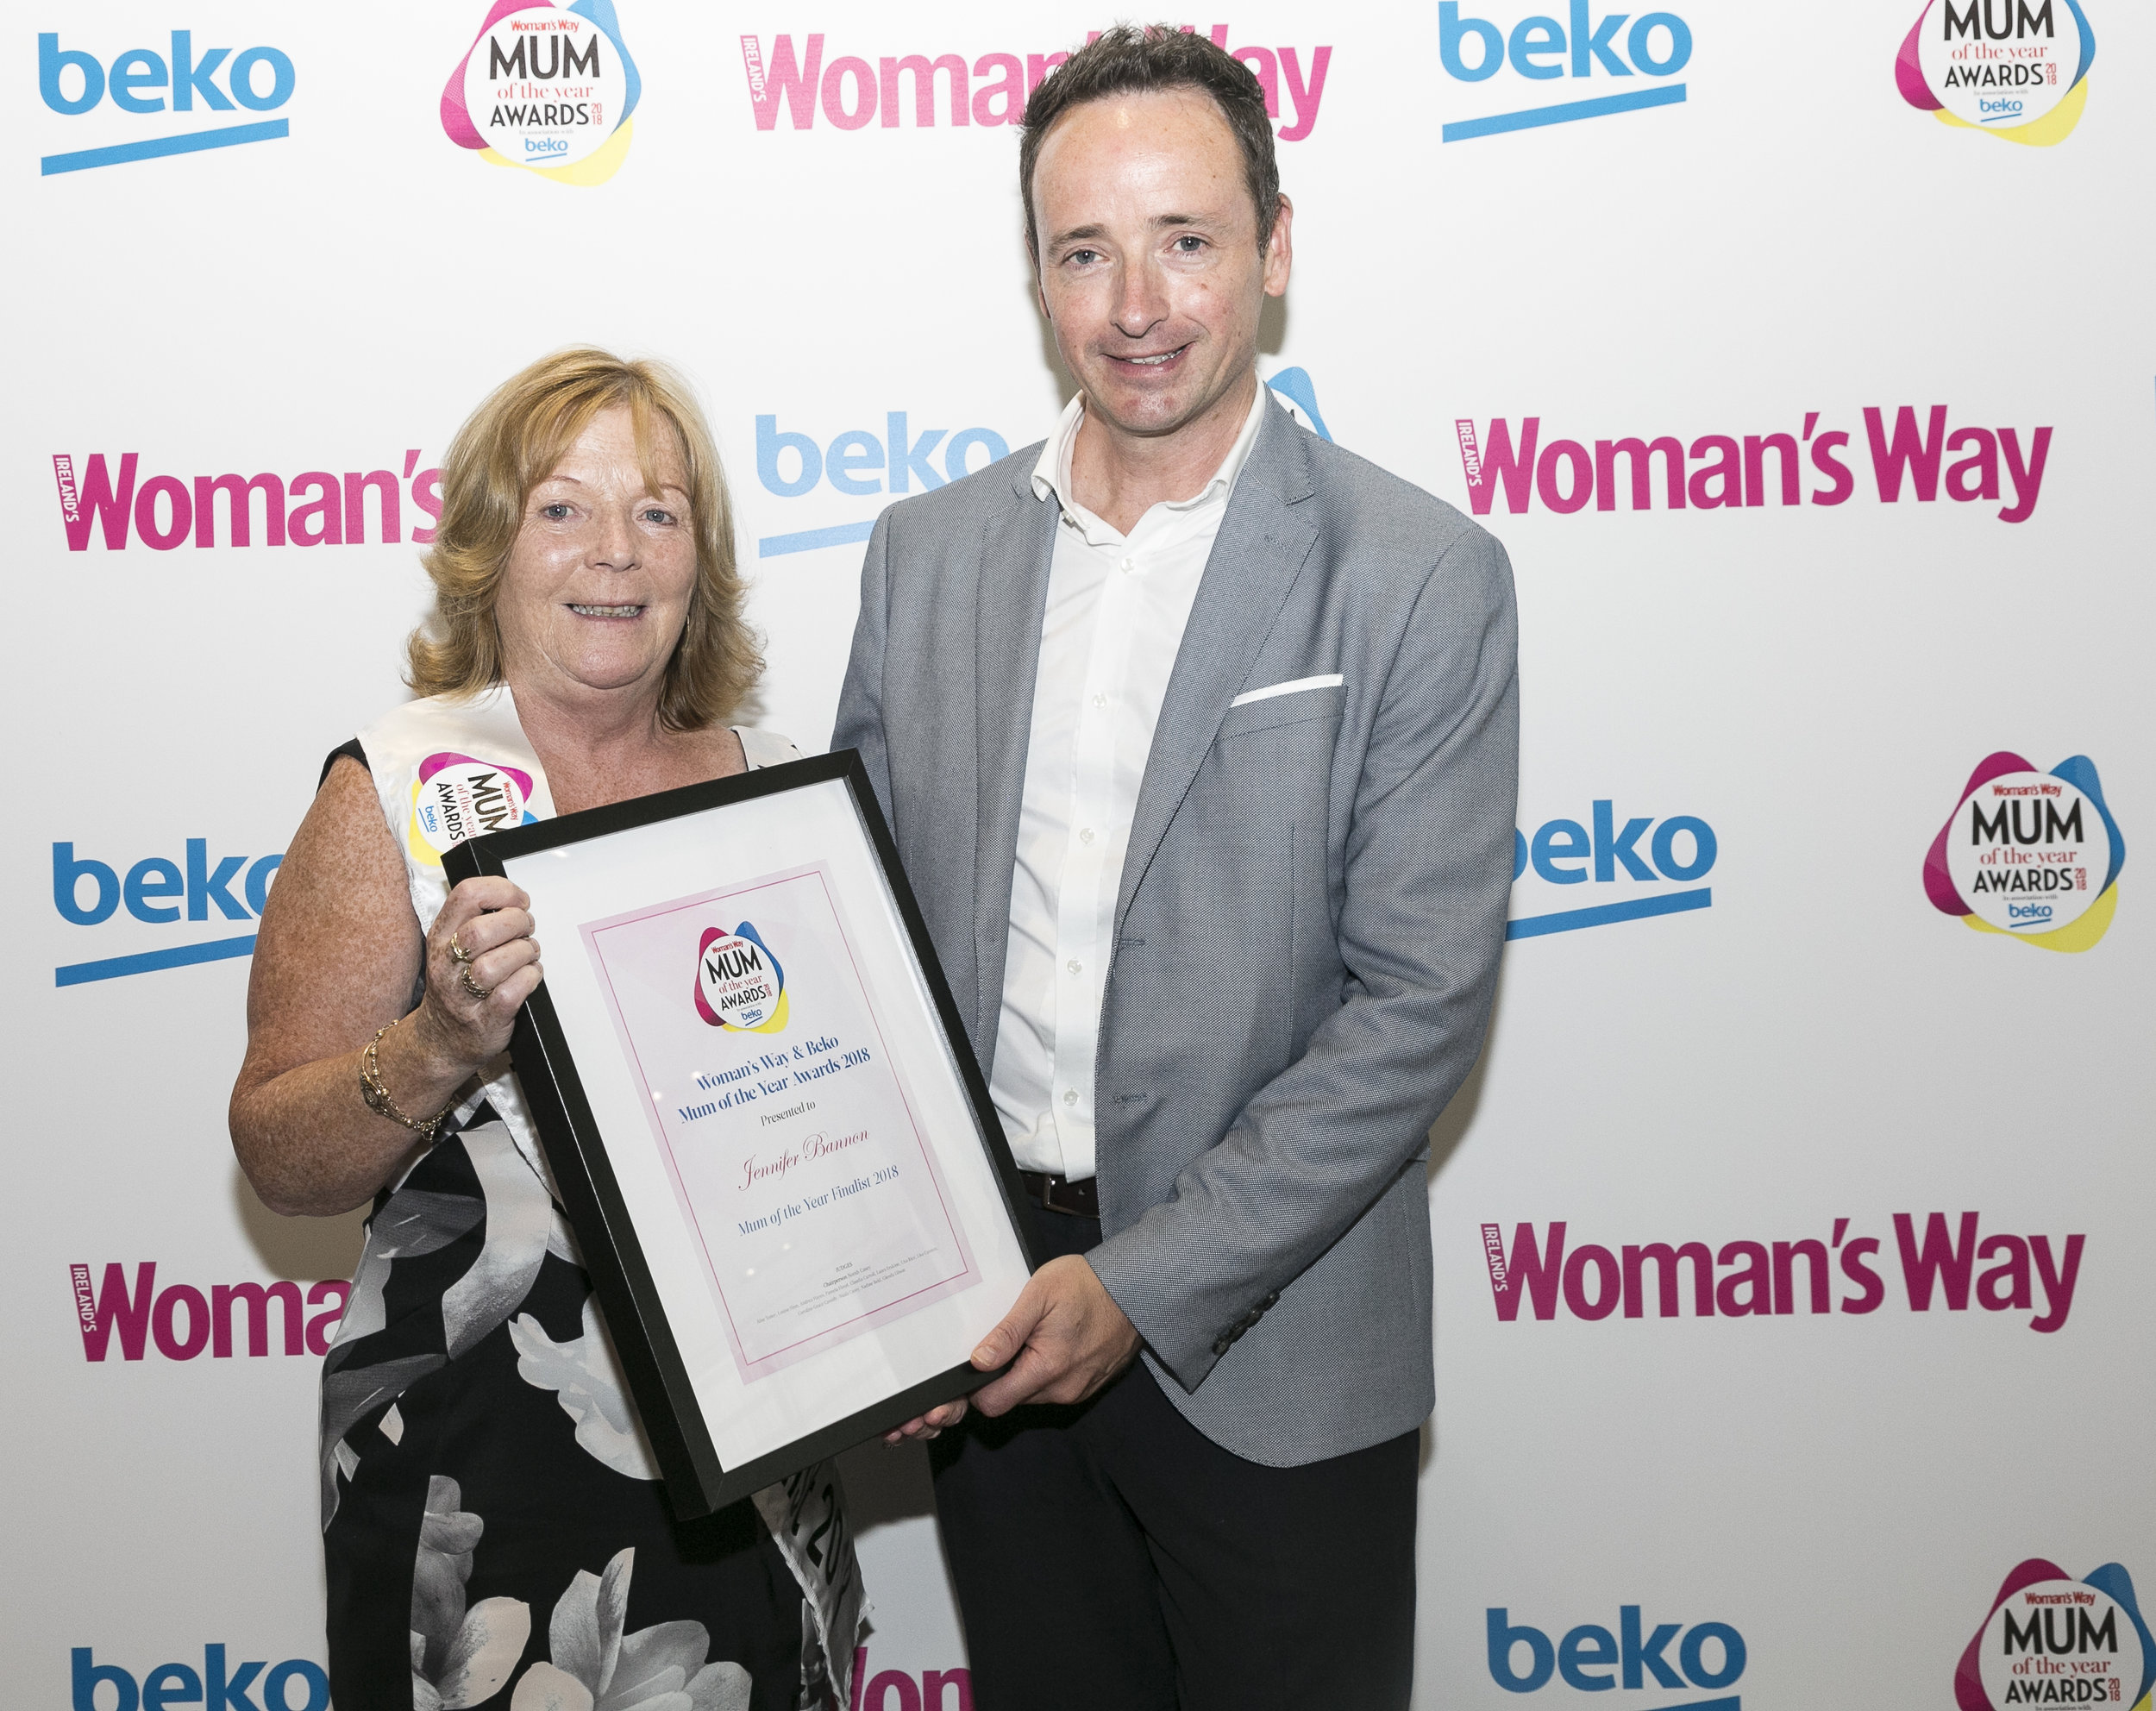 Ian pictured with Mum of the Year Finalist Jennifer Bannon